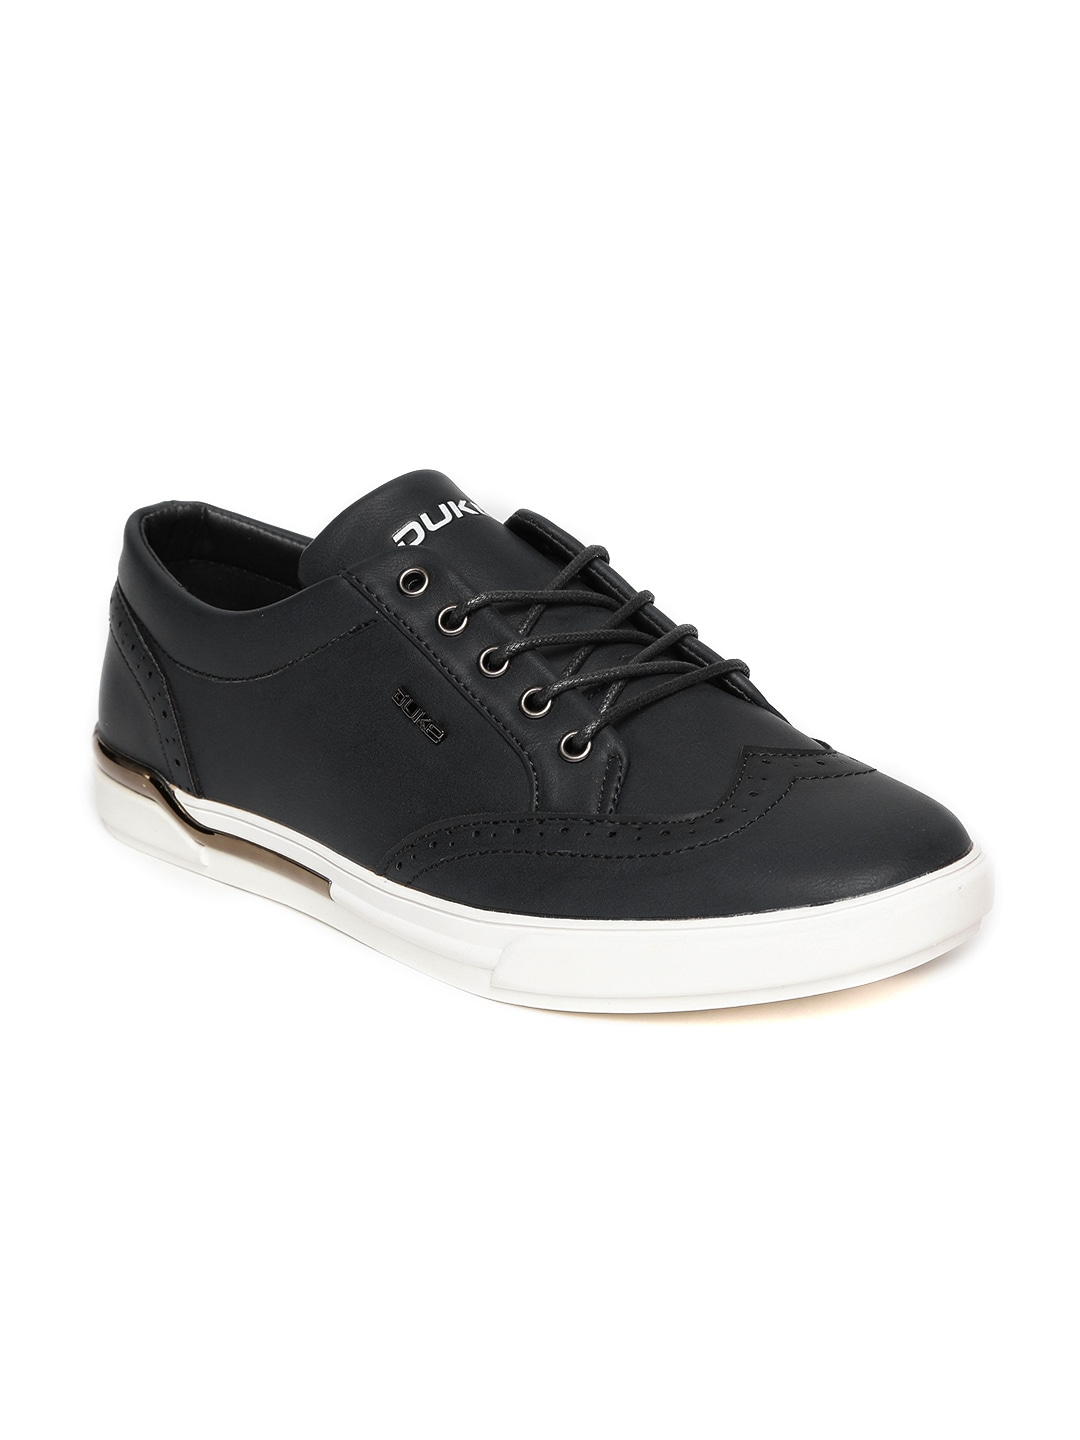 e682f750c43 Duke Casual Shoes - Buy Duke Casual Shoes online in India